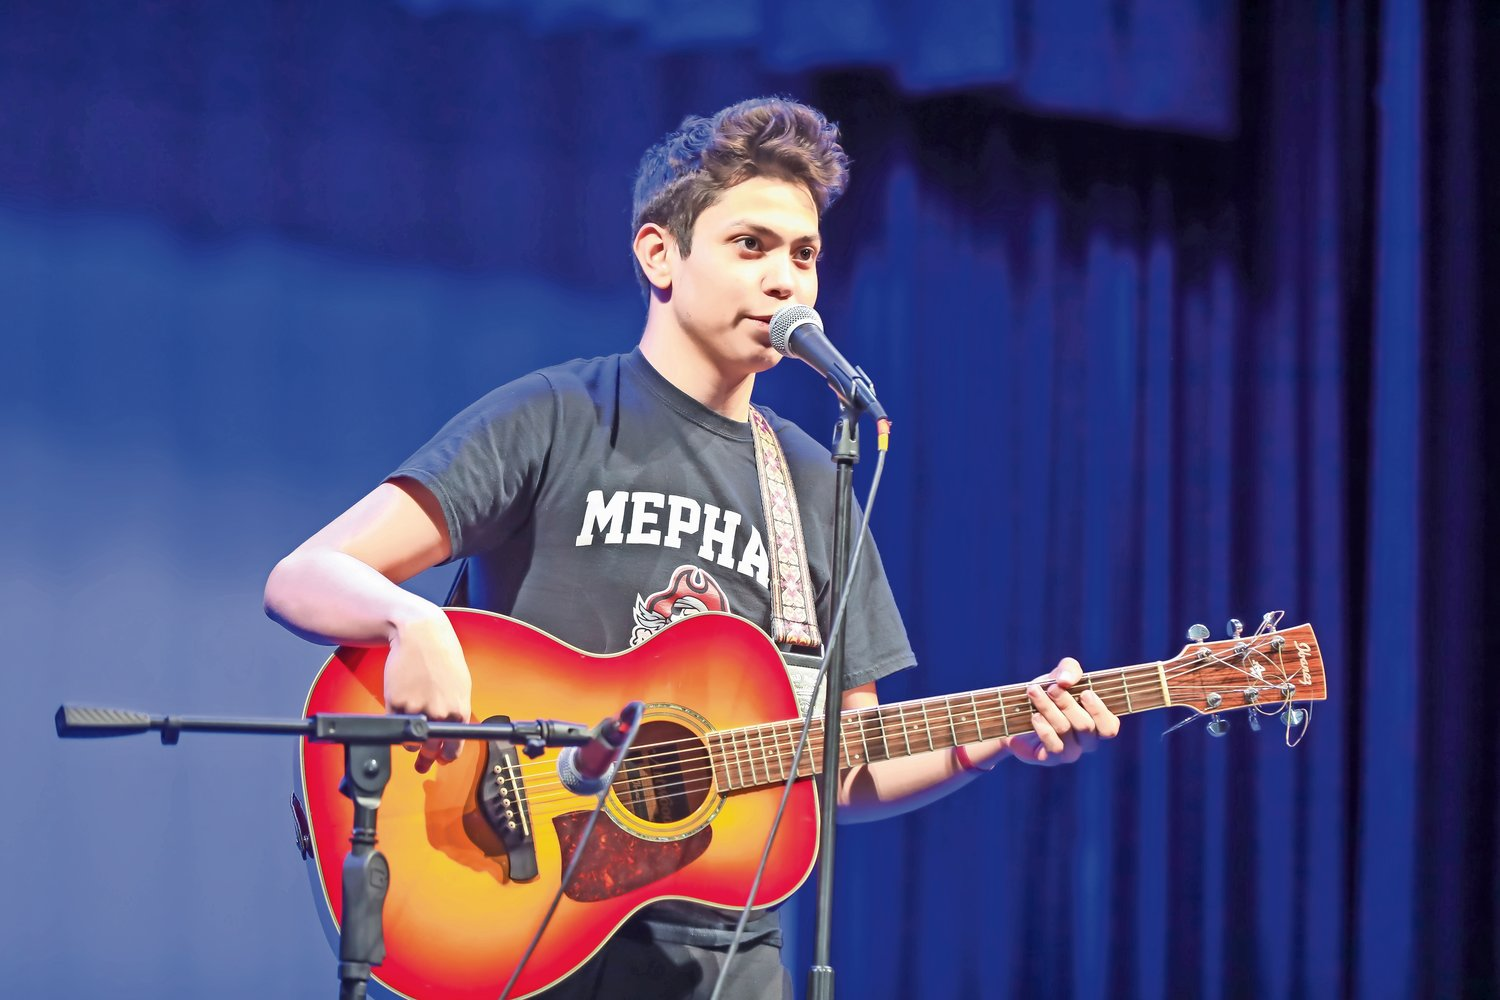 During the talent portion of the pageant, contestant Angel Toro played the guitar.